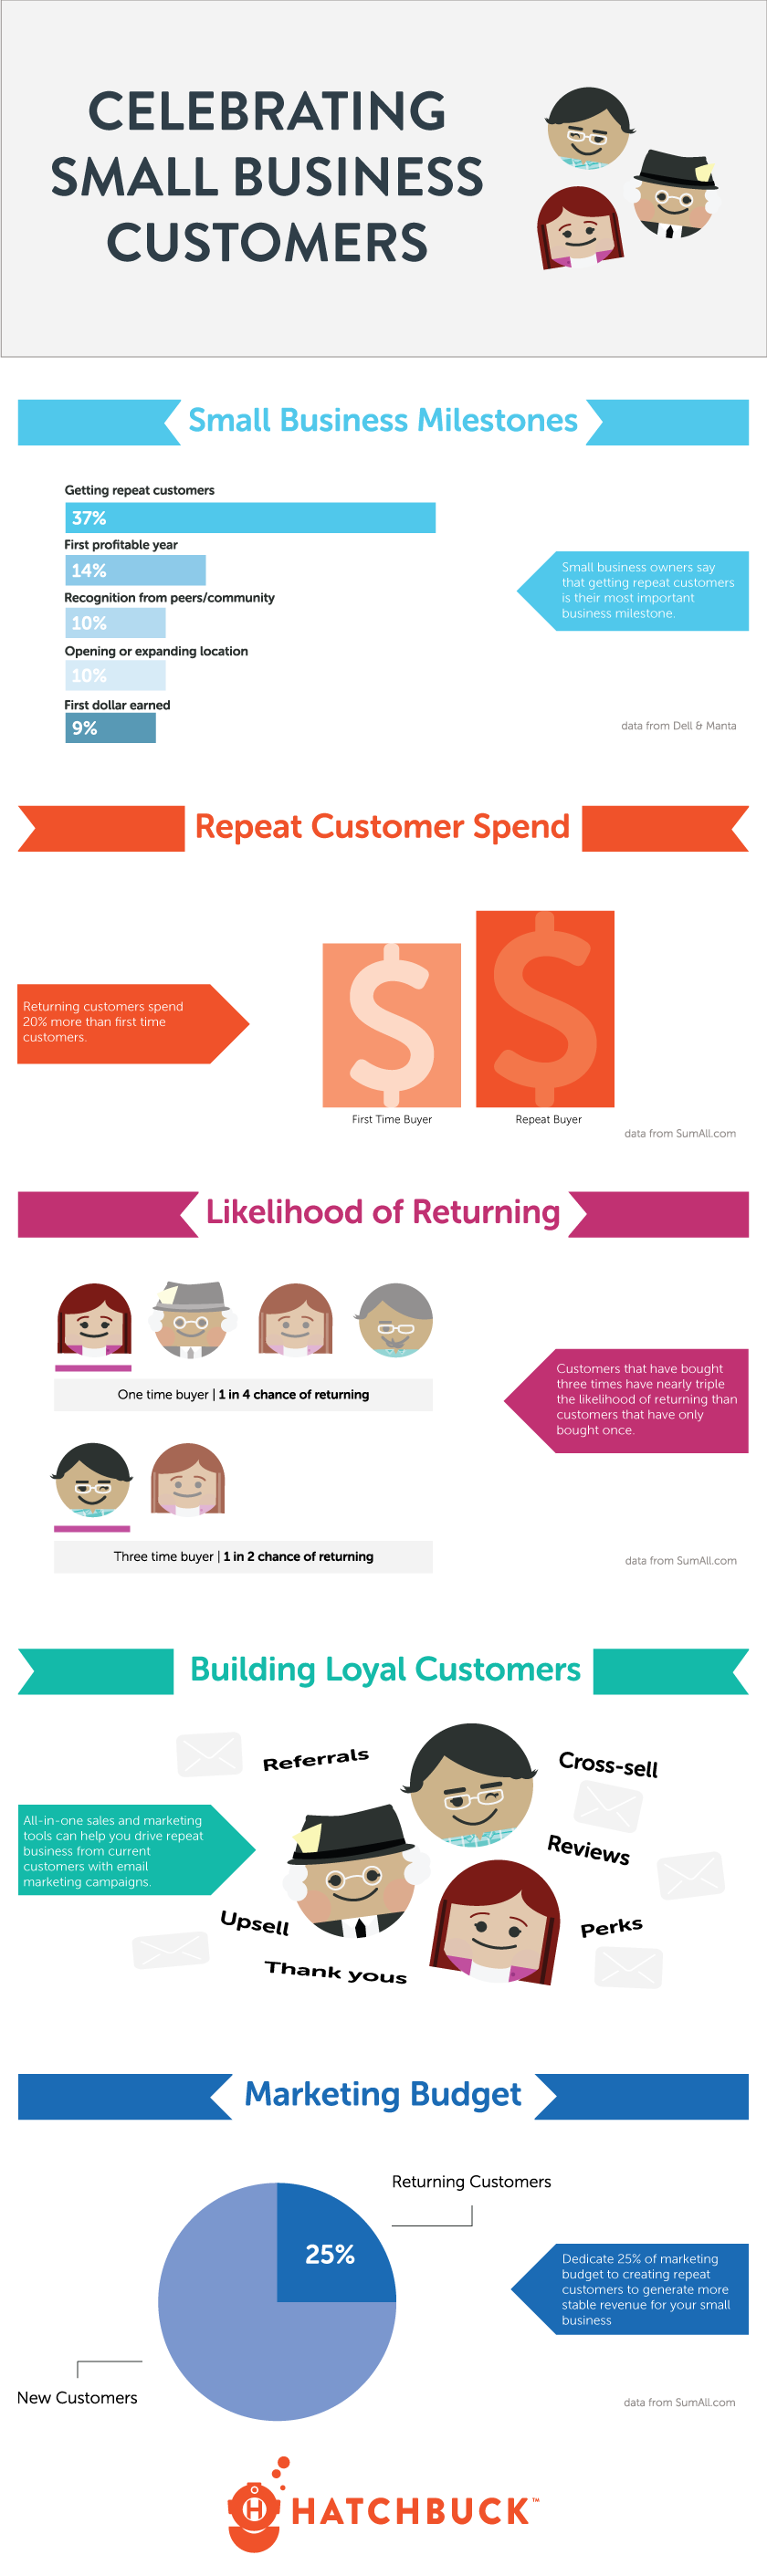 Celebrating-Small-Business-Customers-Infographic-Revised